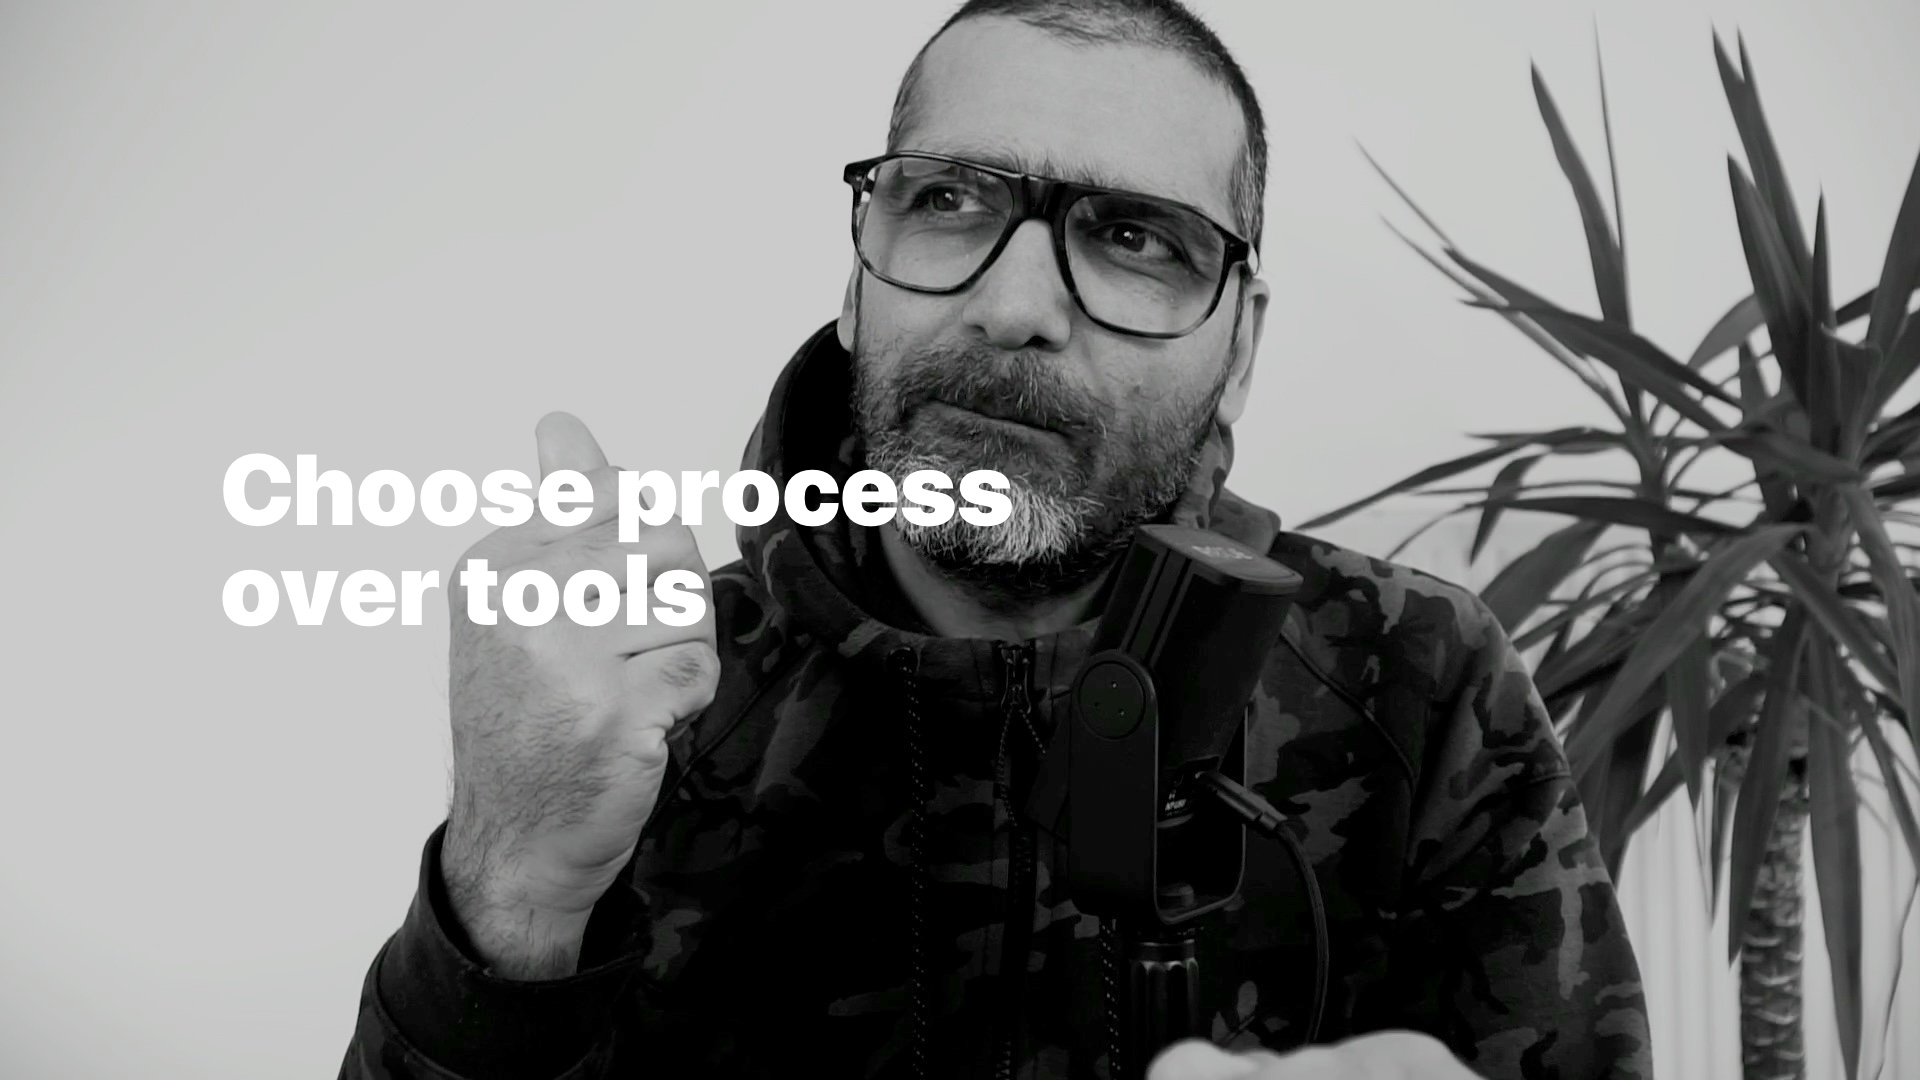 Choose process over tools